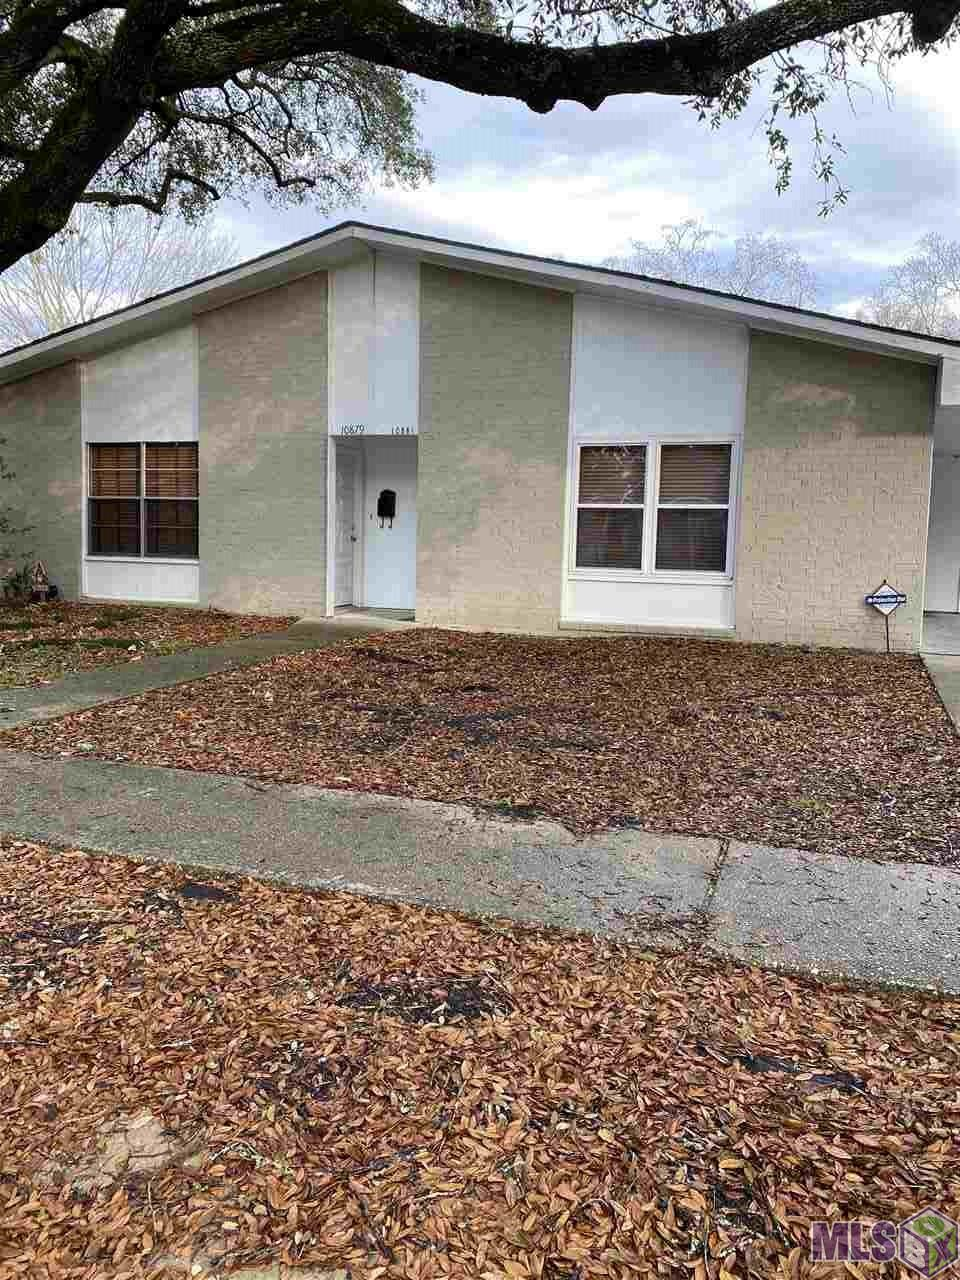 Location, location, location! Spacious 3BR duplex surrounded by huge Live Oak trees and a wonderful community feel. Situated just off Coursey Blvd.